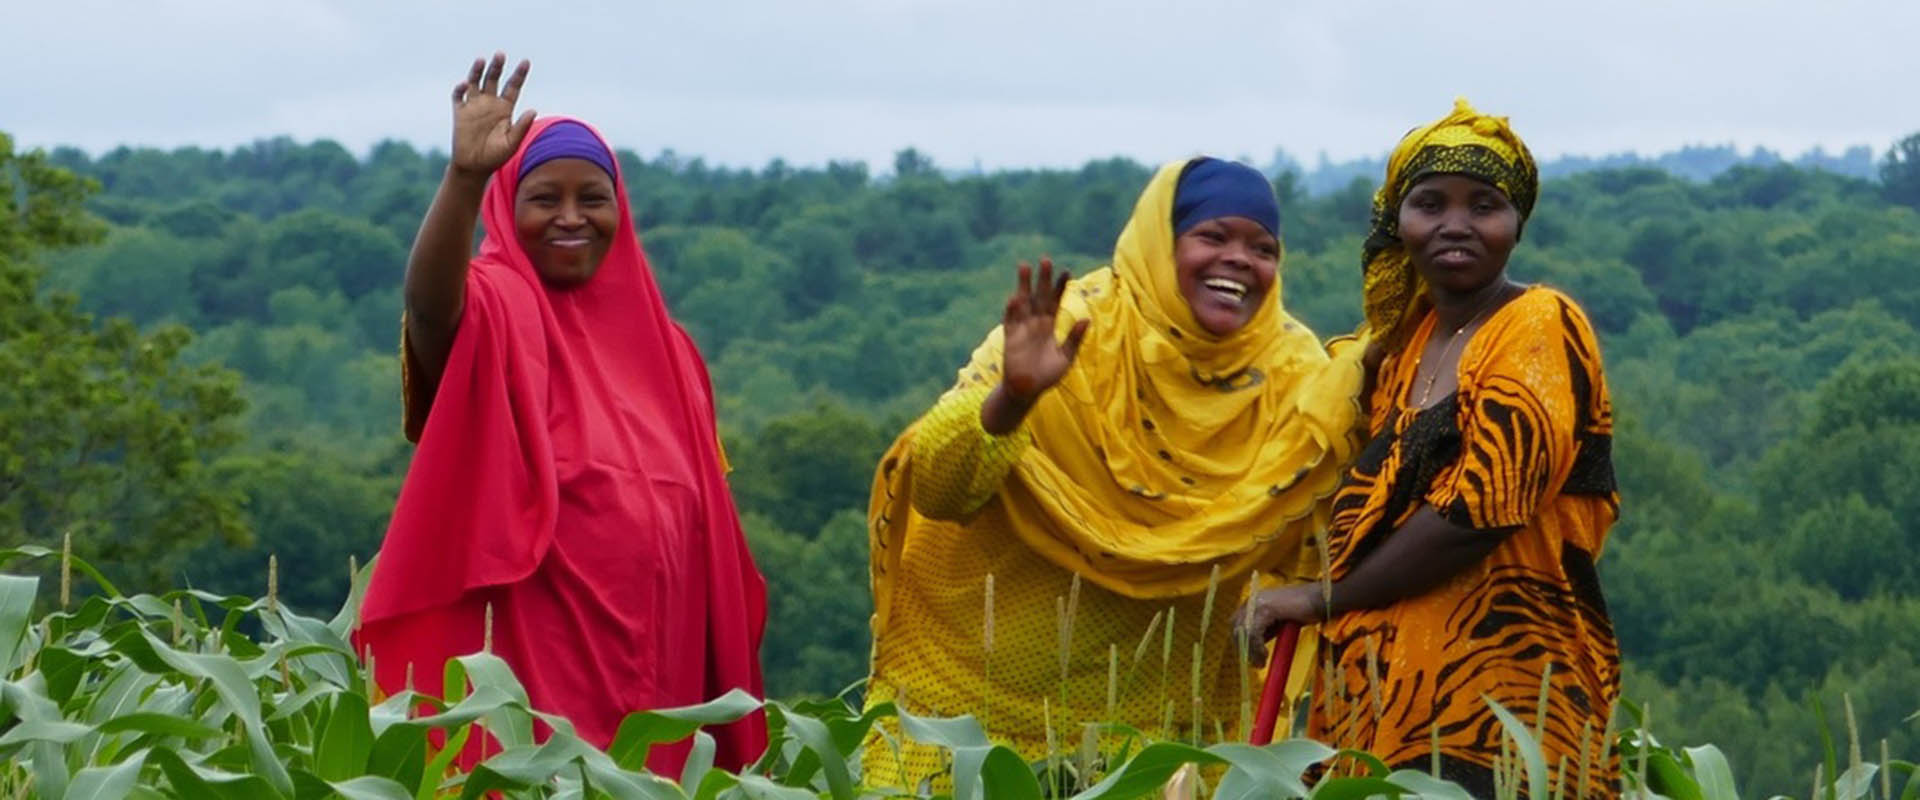 Somali Bantu women at Liberation Farms